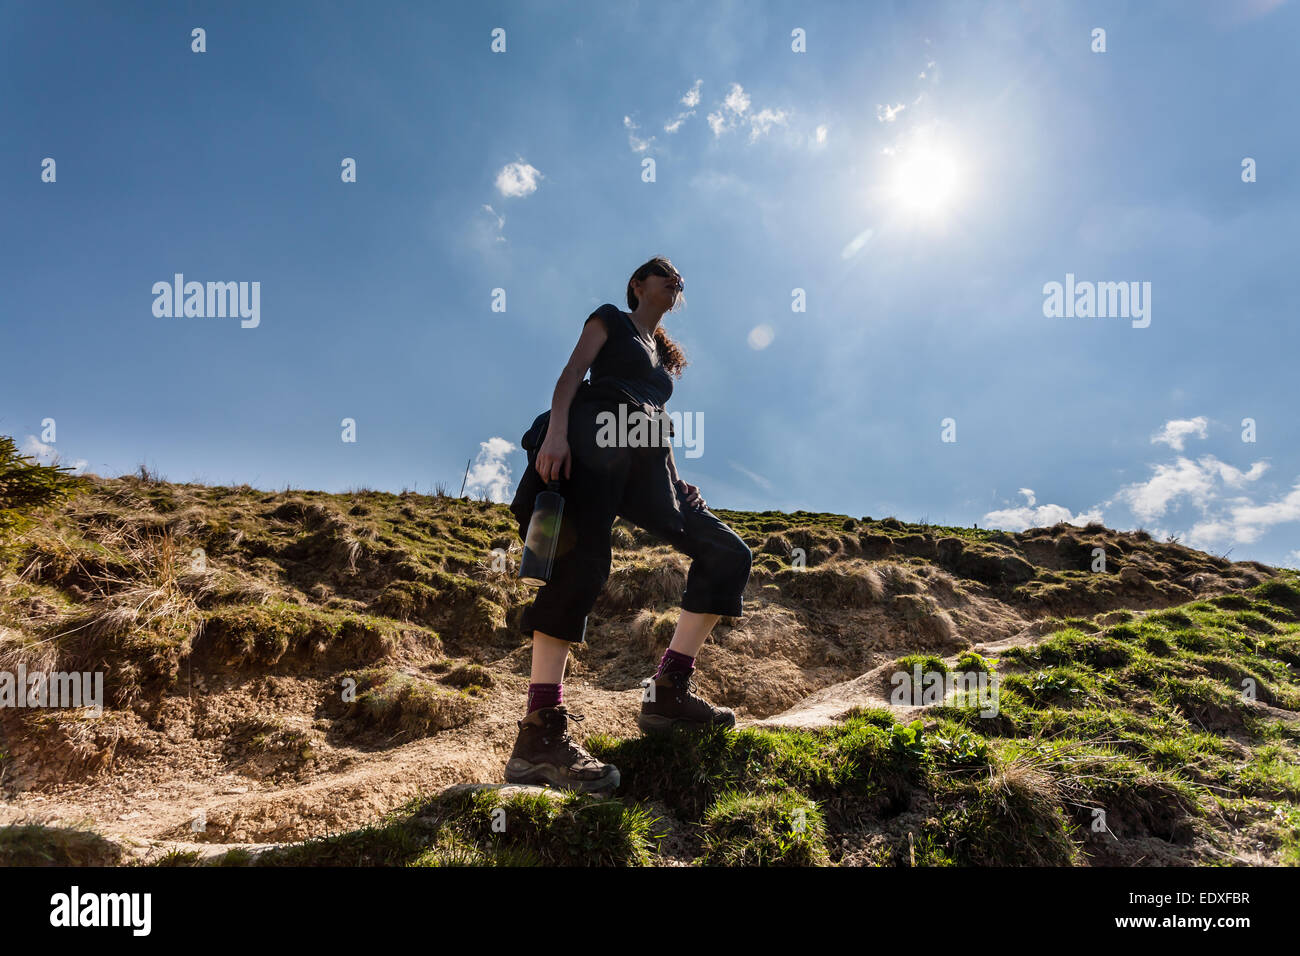 Woman hiking in the Bavarian Alps in Germany. - Stock Image